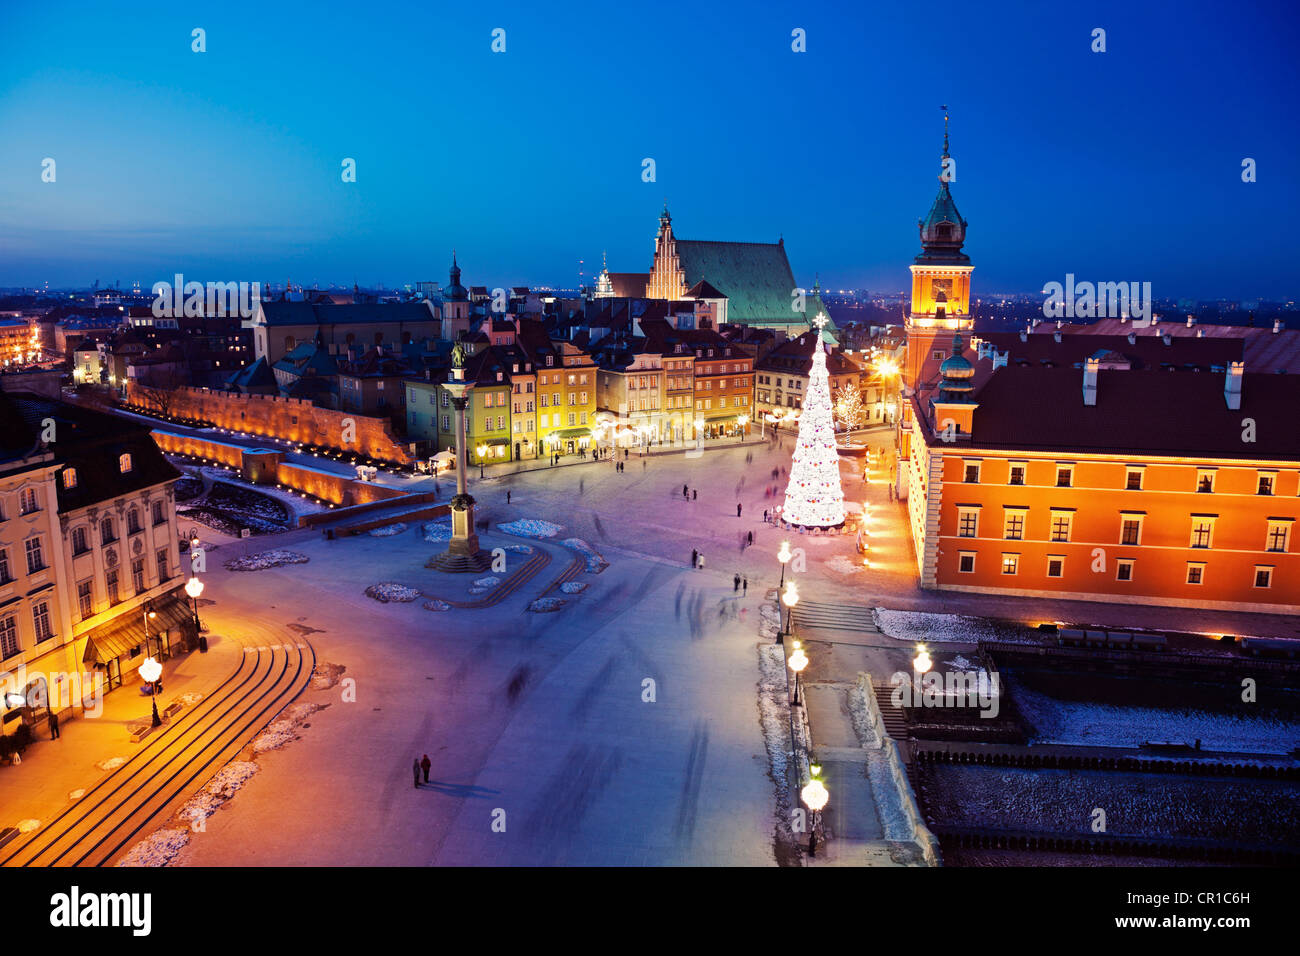 Poland, Warsaw, Castle Square, Sigismund's Column and Royal Castle in Christmas time - Stock Image